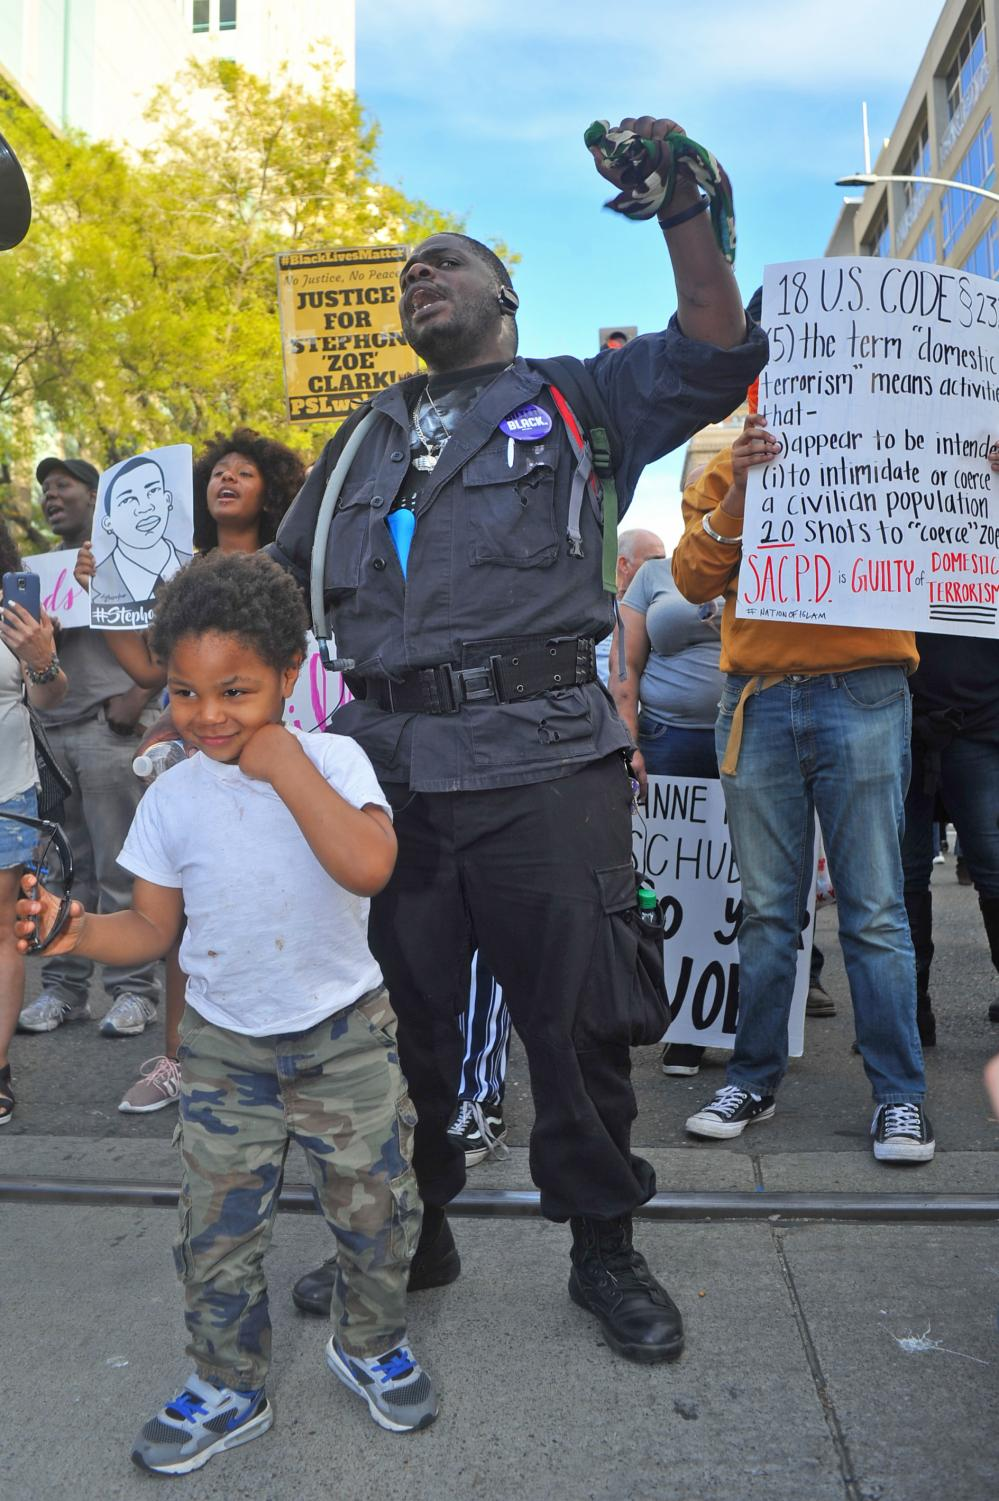 Sacramento resident Darnell Canfield (middle) and his son chant in front of a protest line in downtown Sacramento, California.